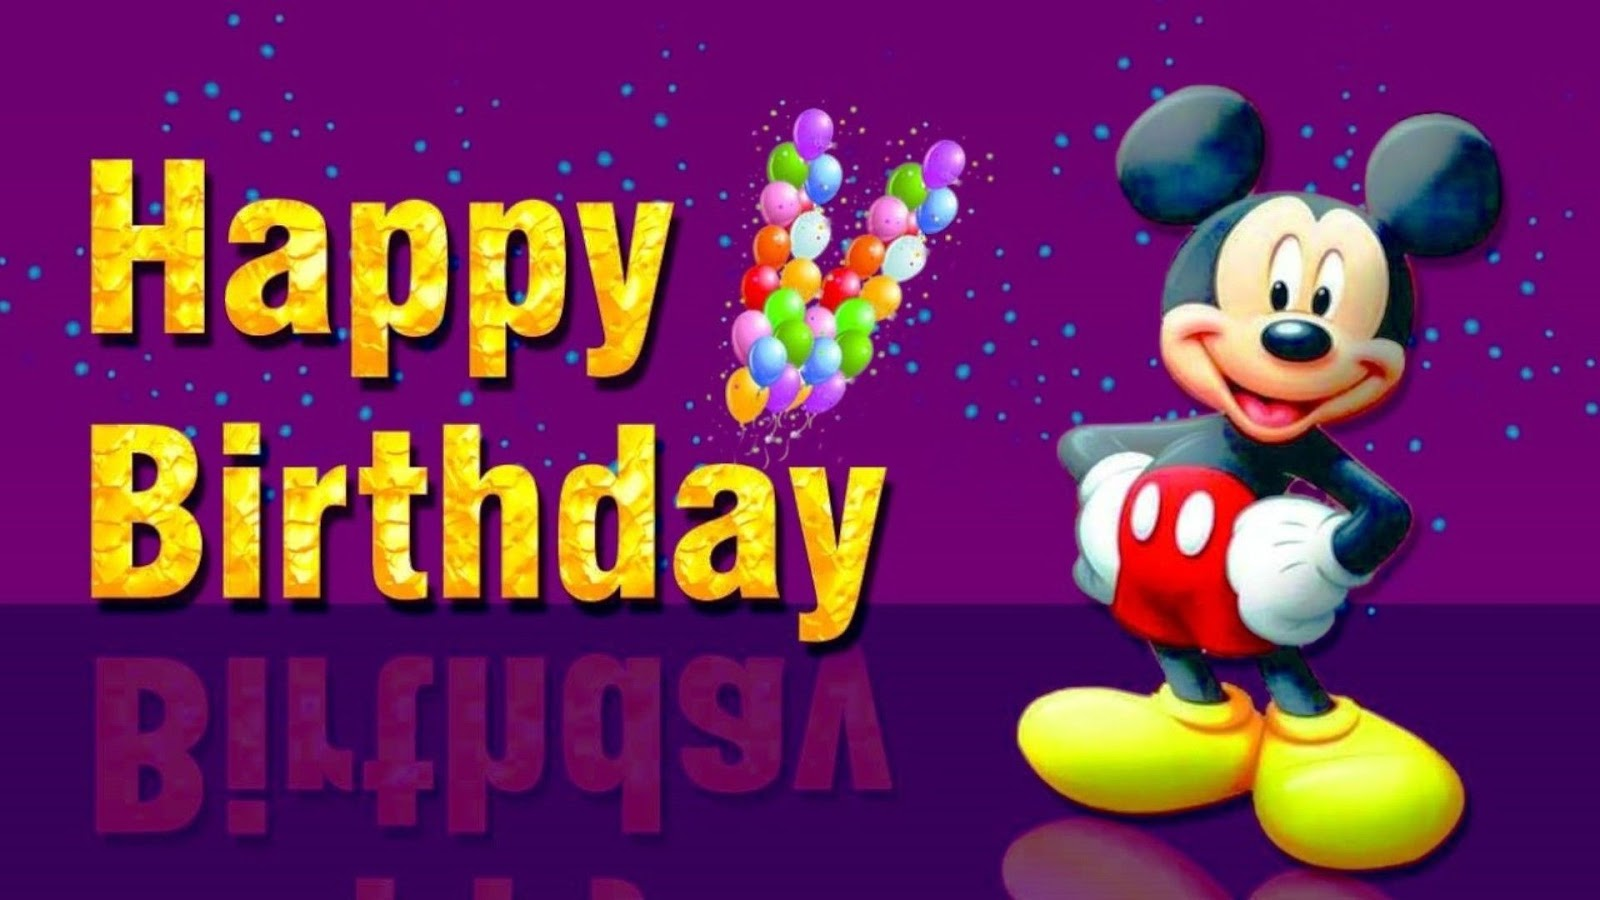 HAPPY BIRTHDAY HD FOR FACEBOOK - Wishes & Love